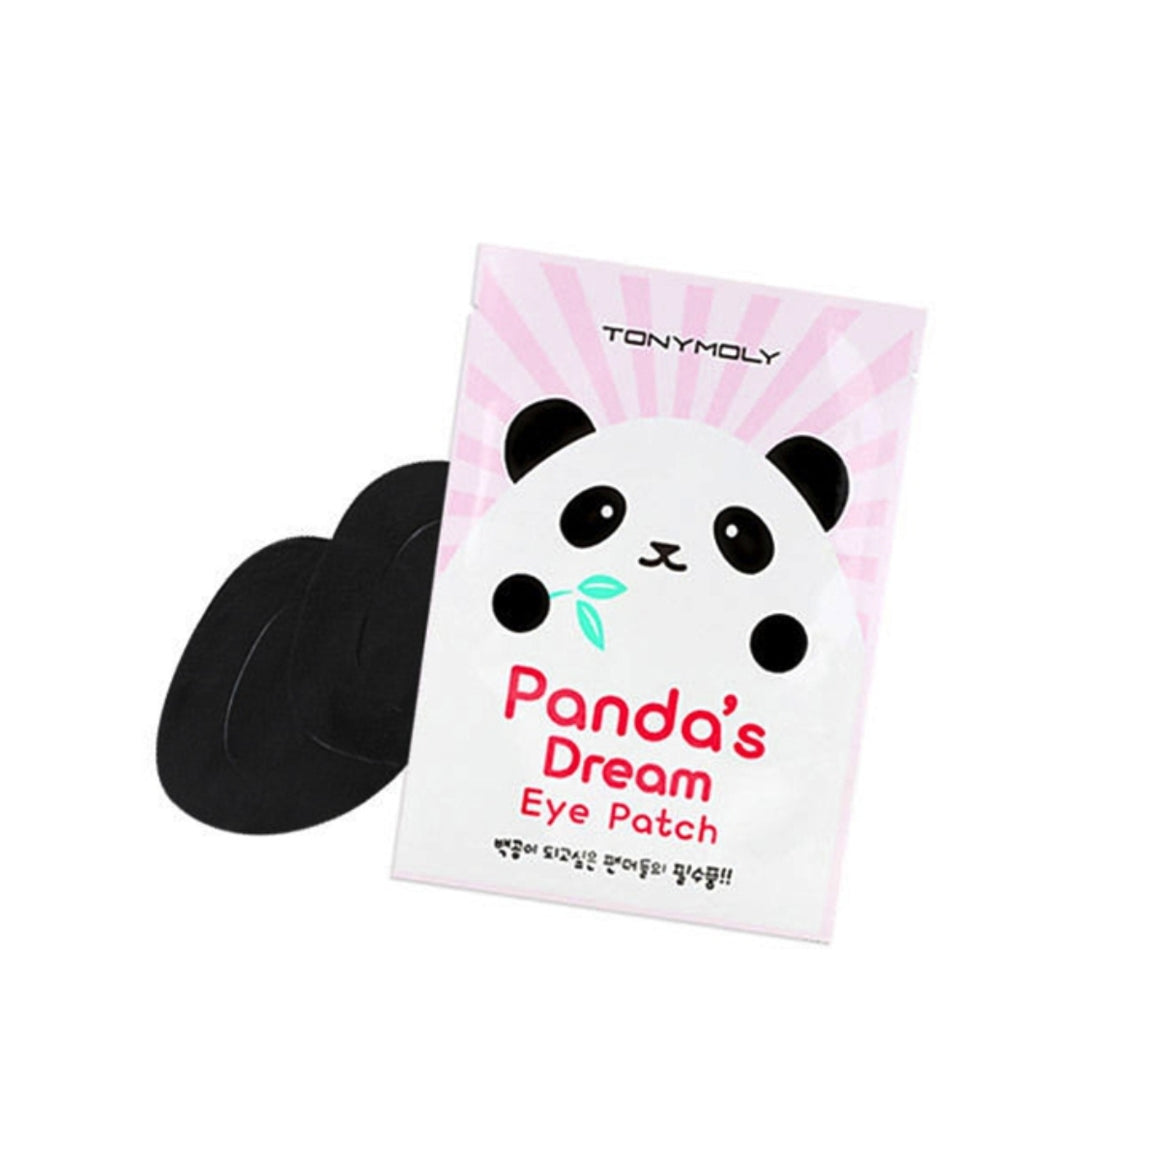 TonyMoly Panda's Dream Eye Patch